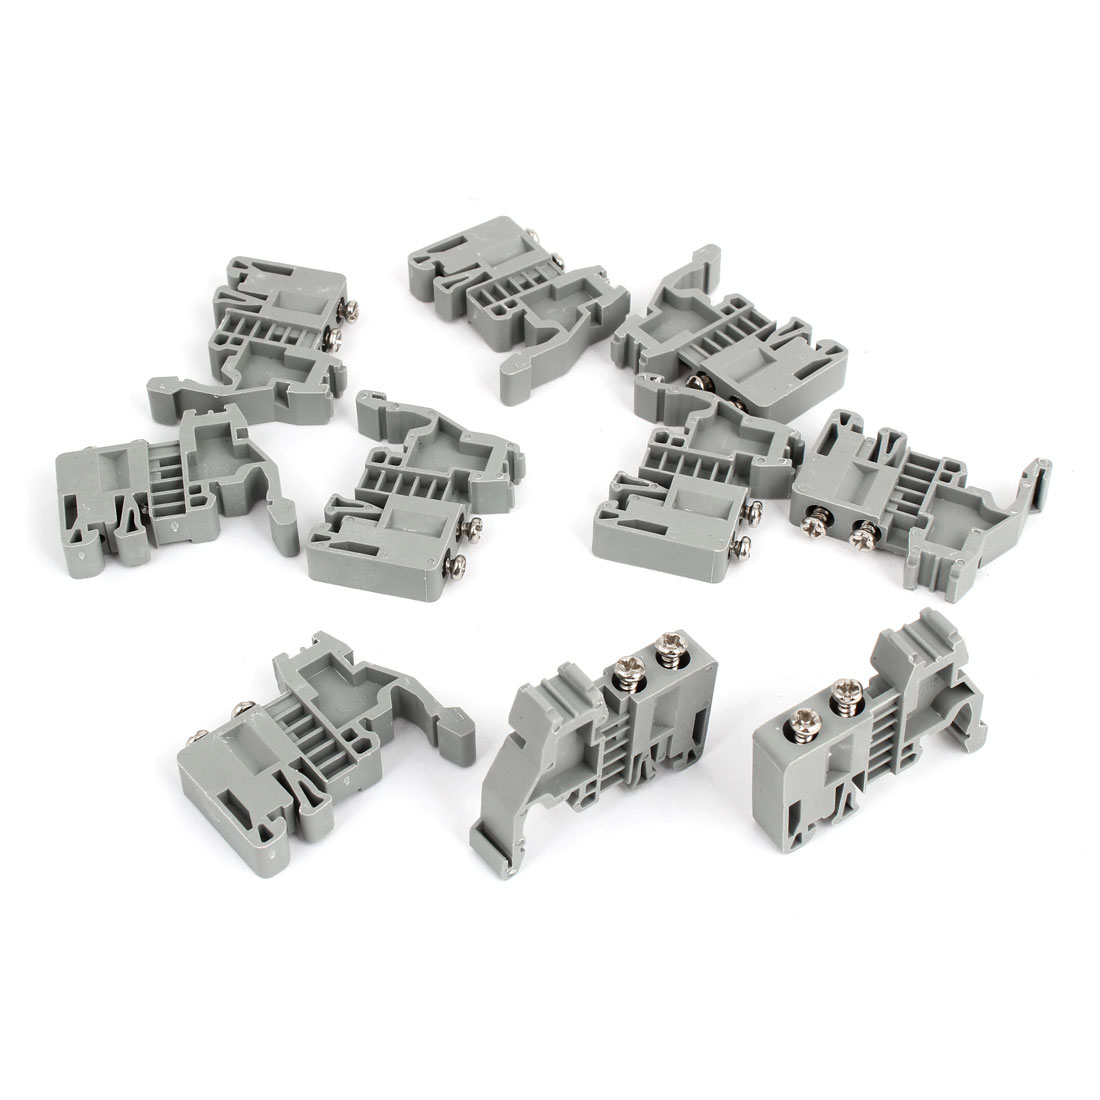 10 Pcs 35mm Din Rail Screw Fixed Terminal Block End Stopper Plate Clamps